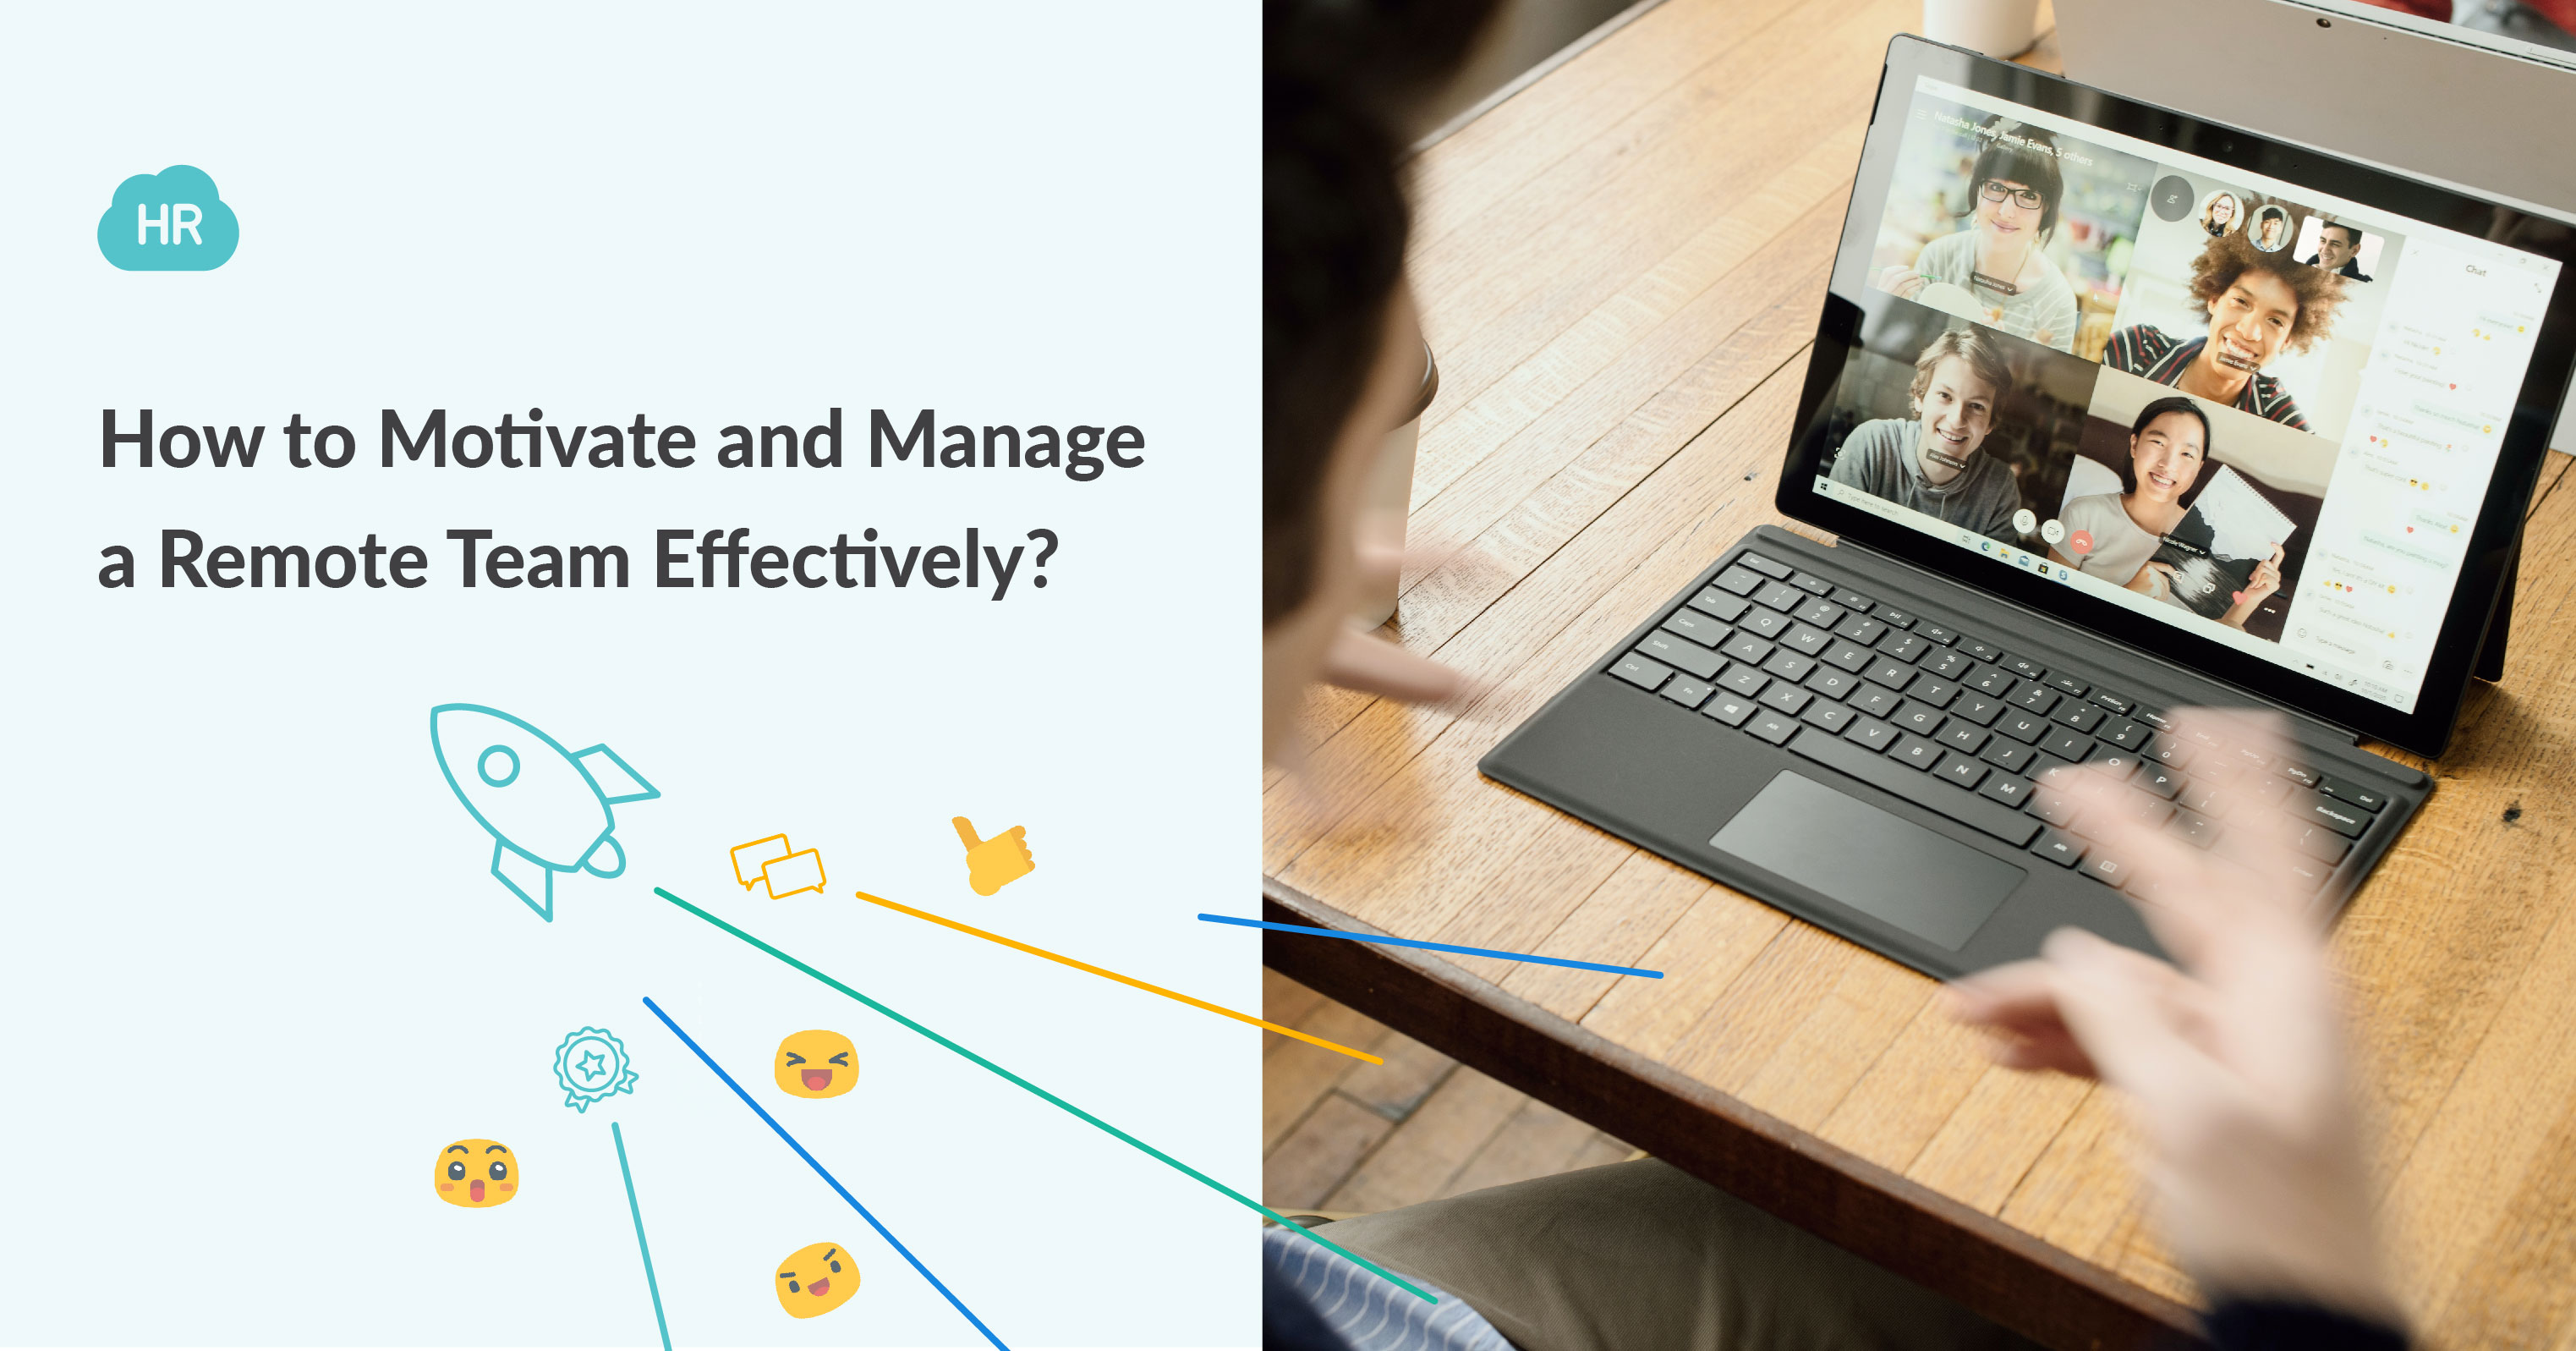 How to Motivate and Manage a Remote Team Effectively?